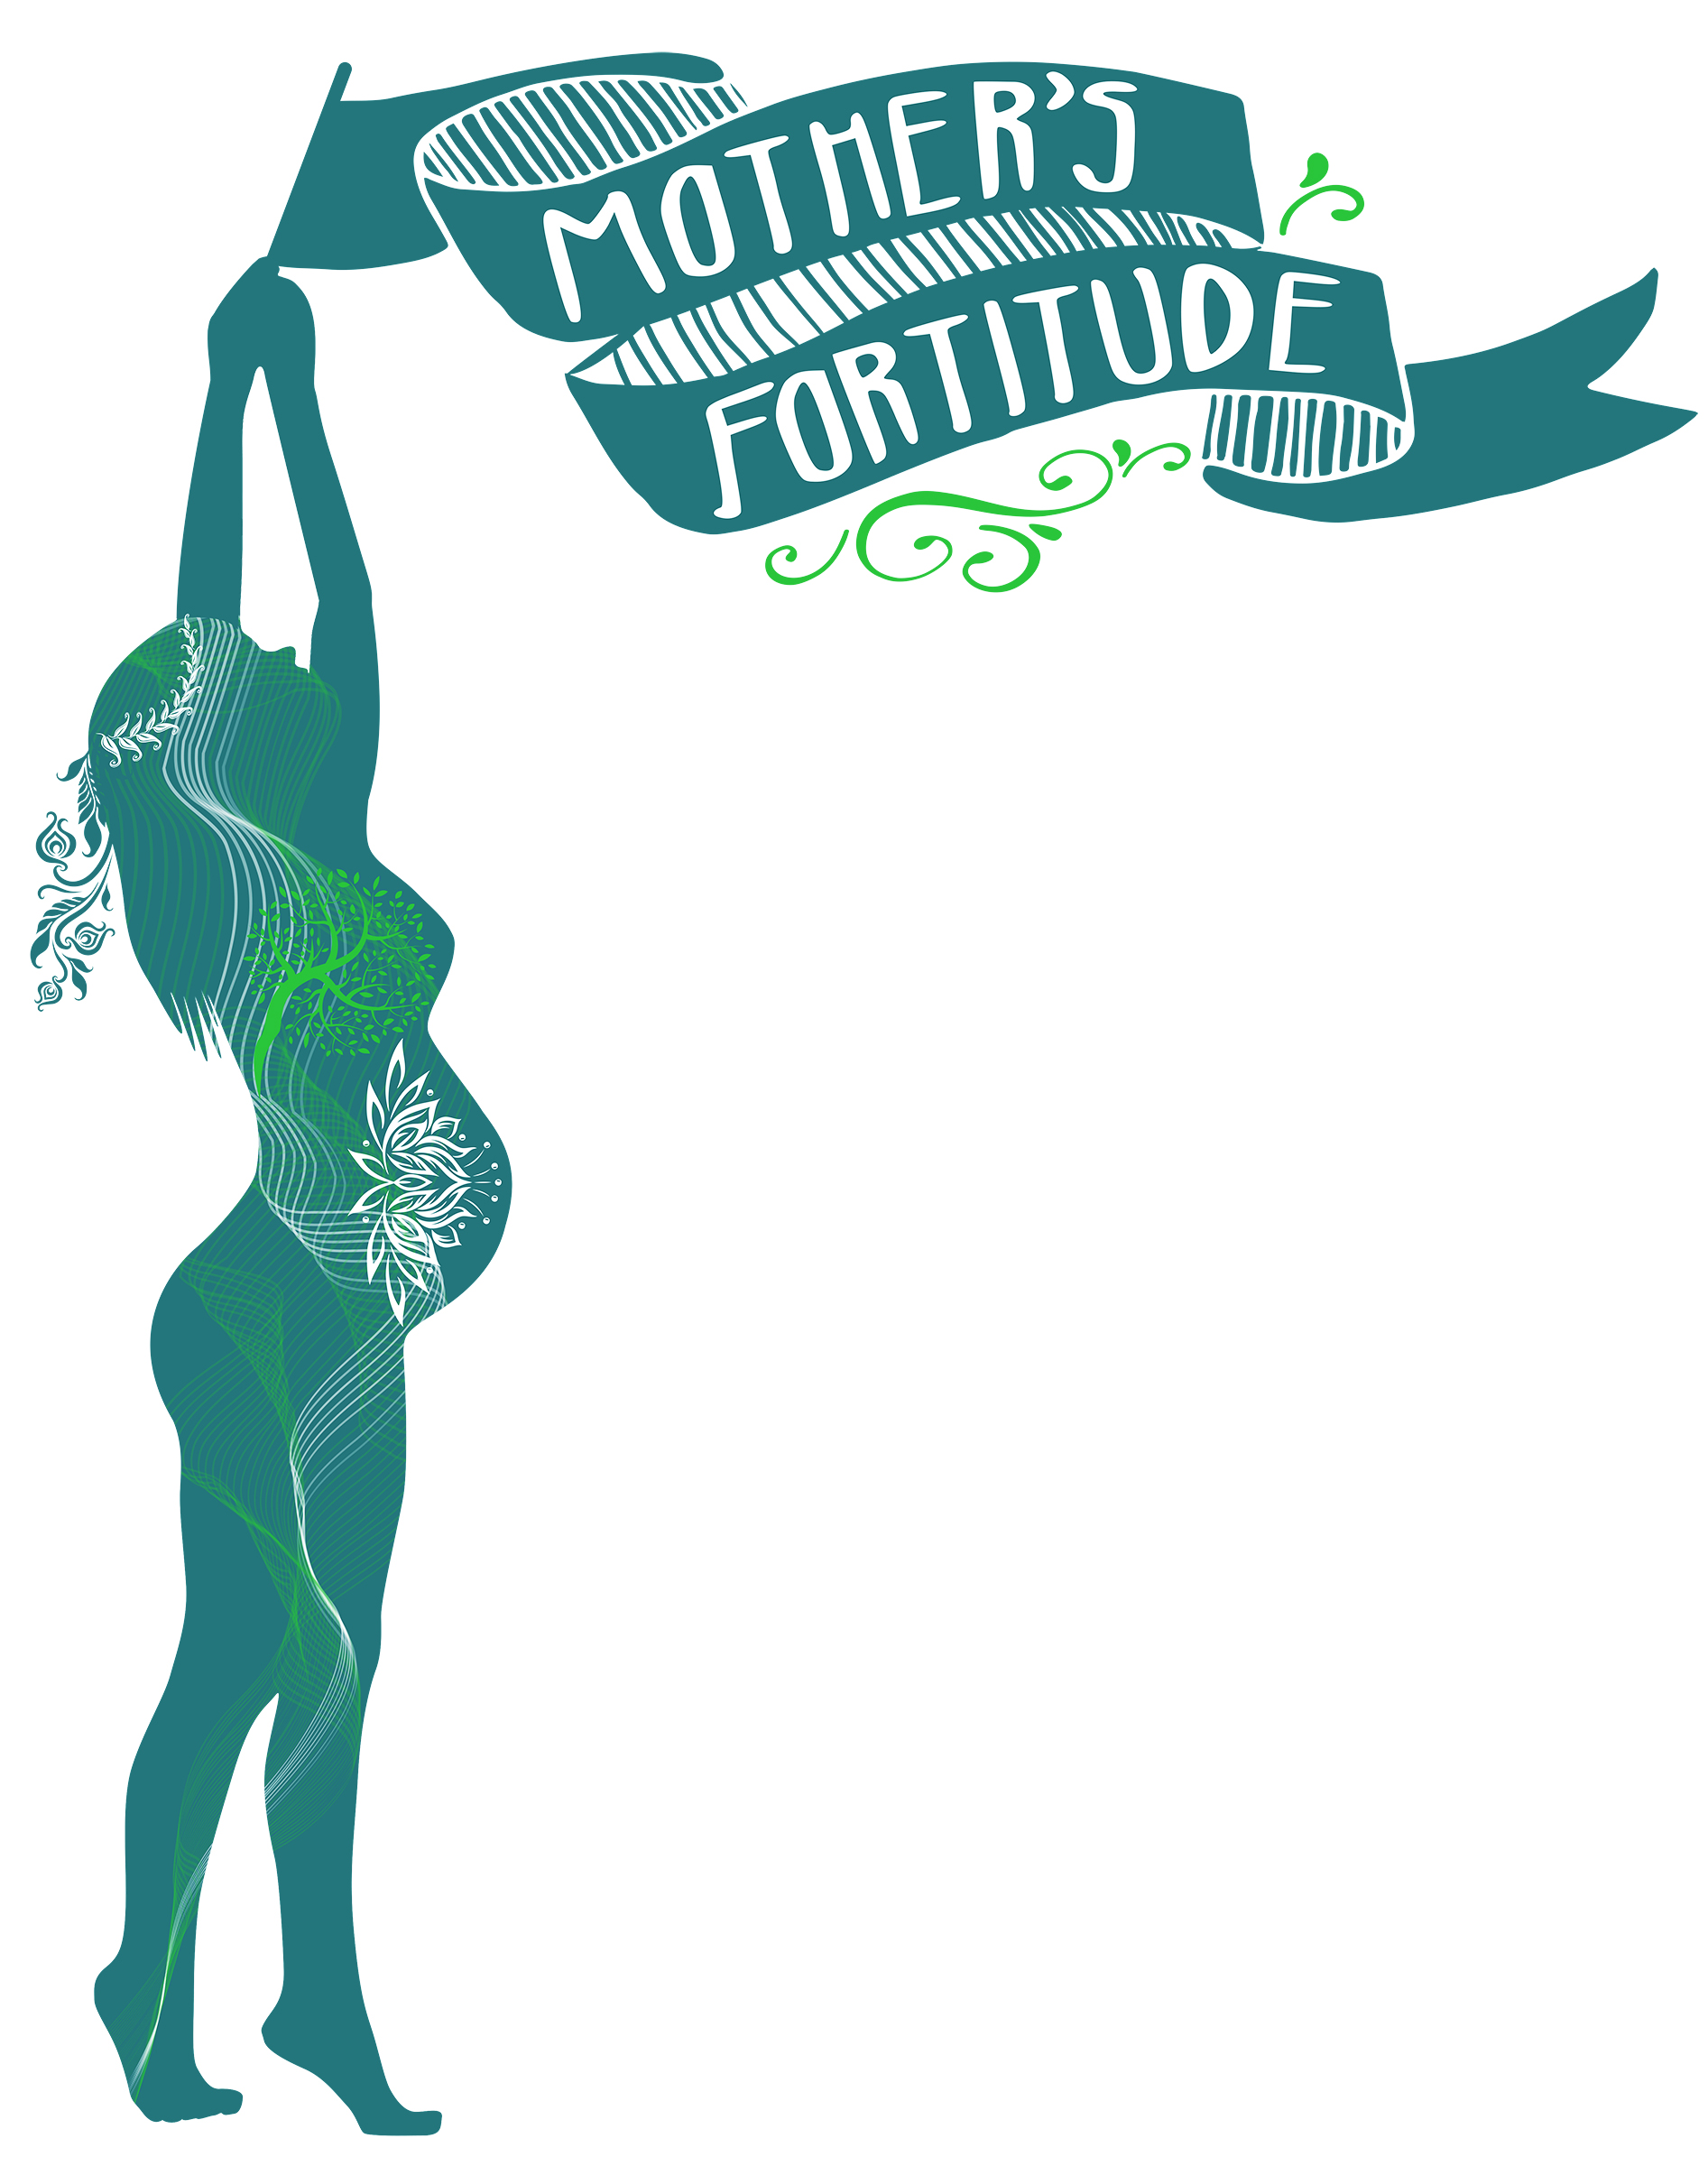 Welcome to Mothers Fortitude!